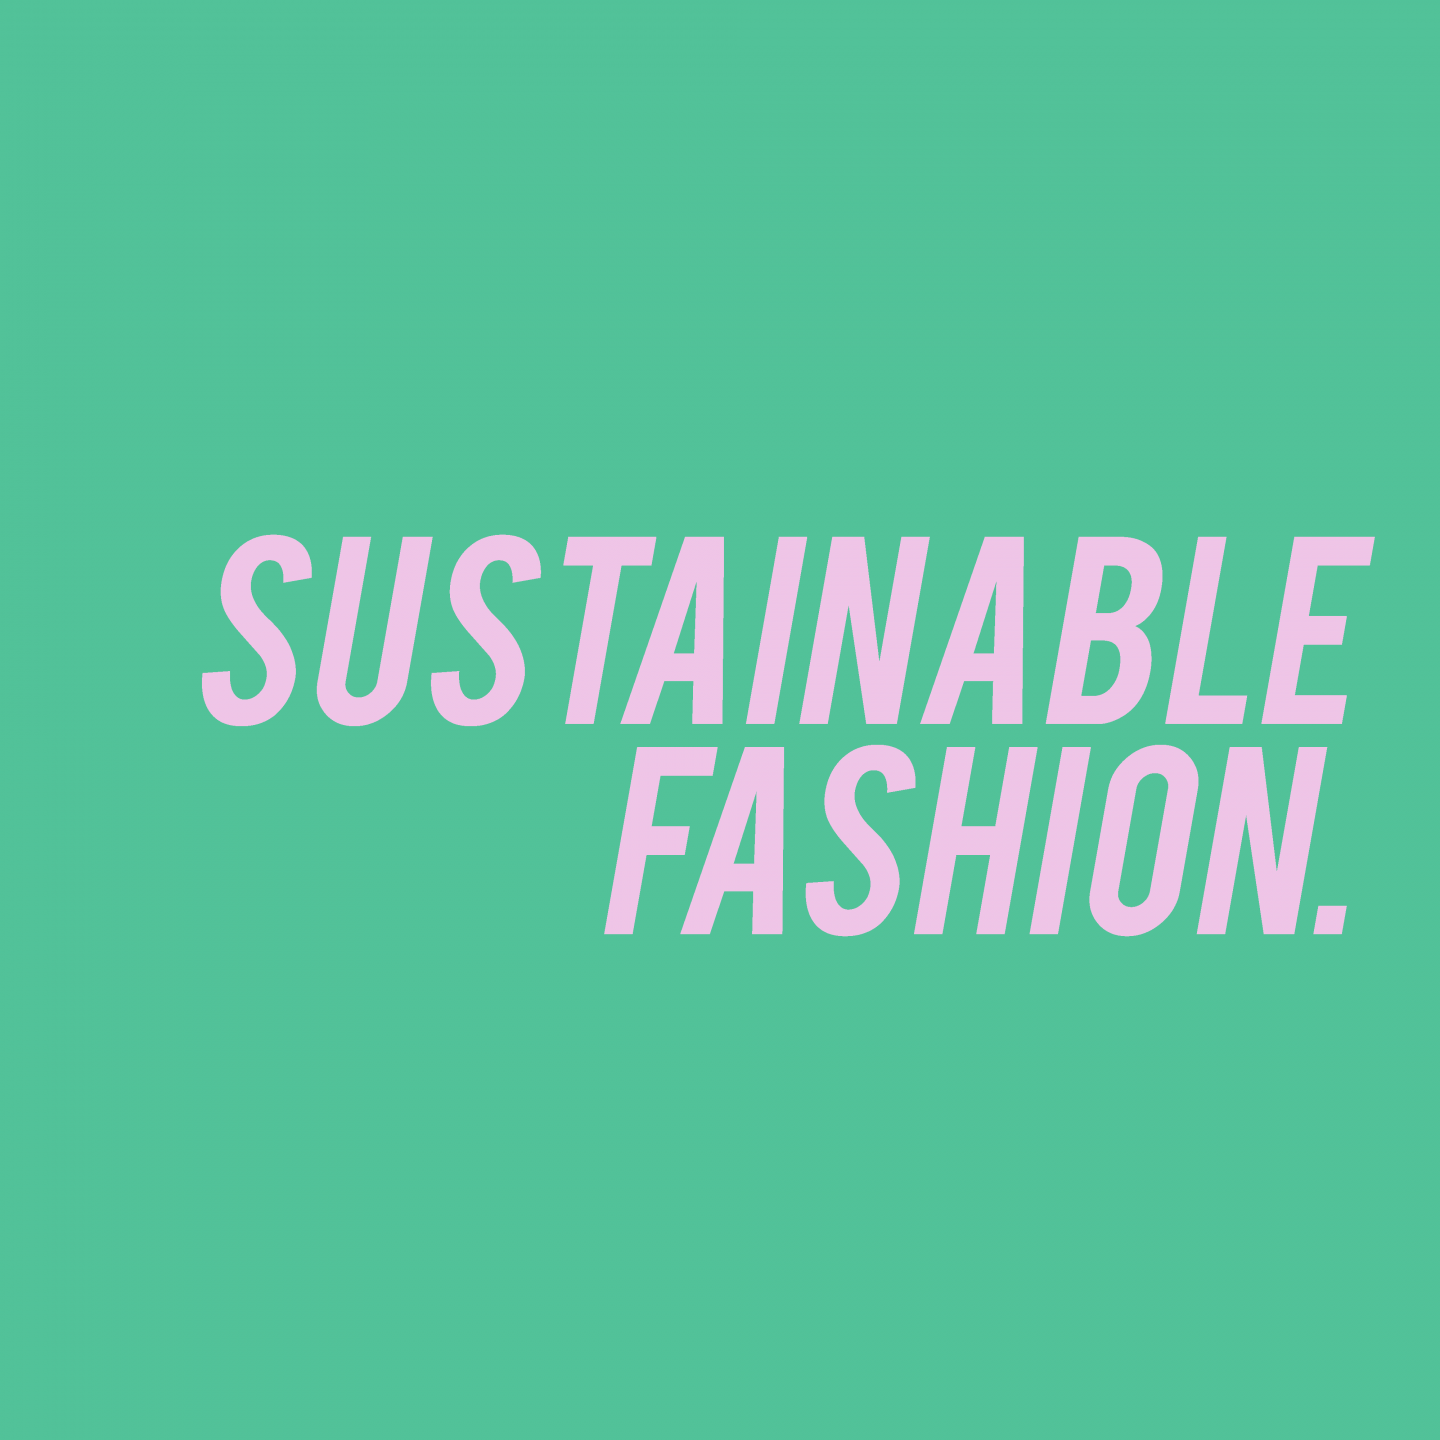 HOW TO SUPPORT FASHION SUSTAINABILITY ?